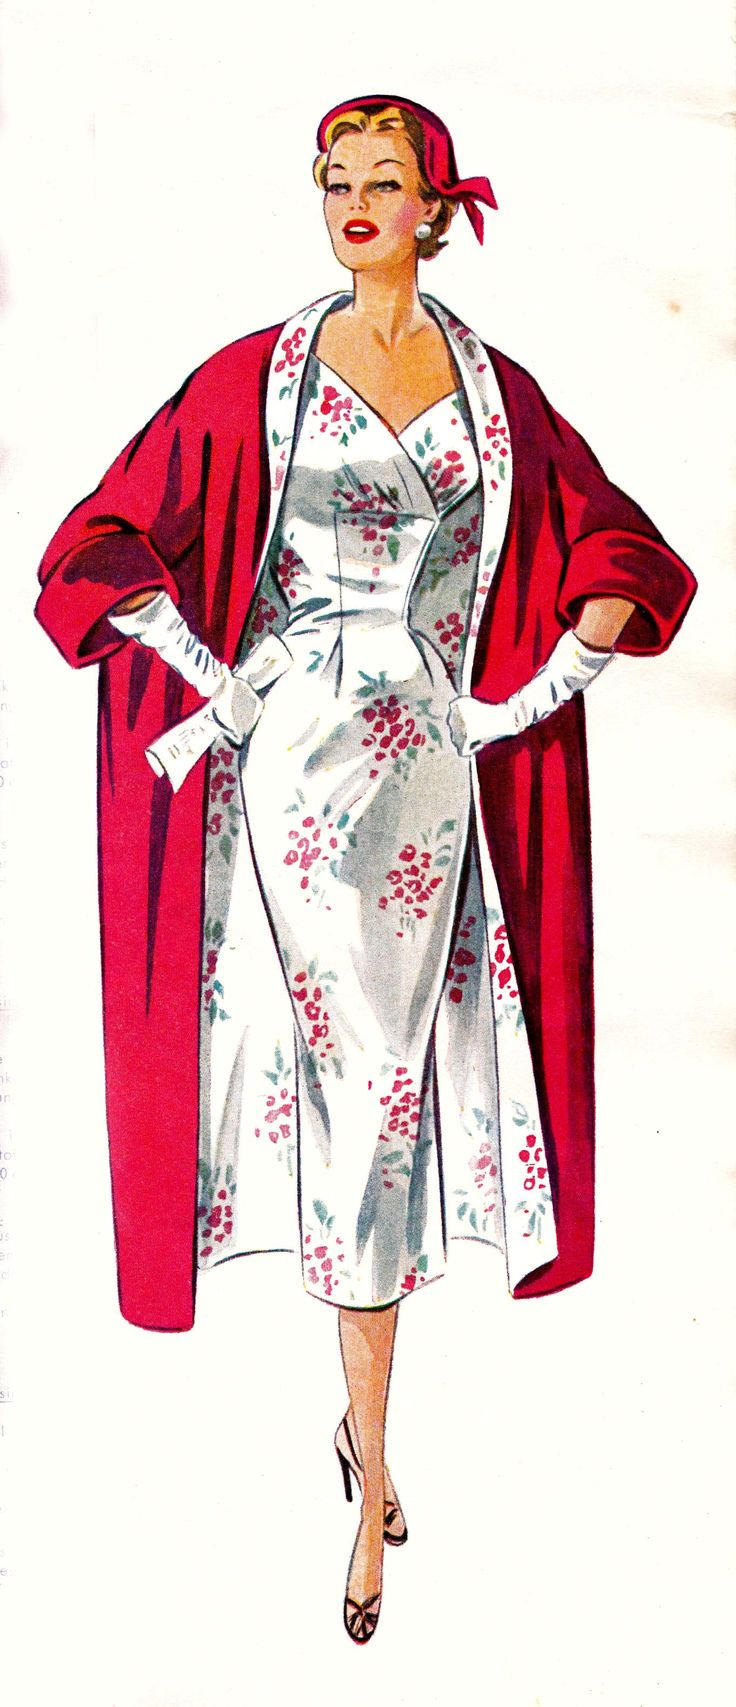 Vintage Sewing Pattern  Evening coat is perfect in red peau de soie  or bridal satin. Dress is perfected in a printed floral silk.